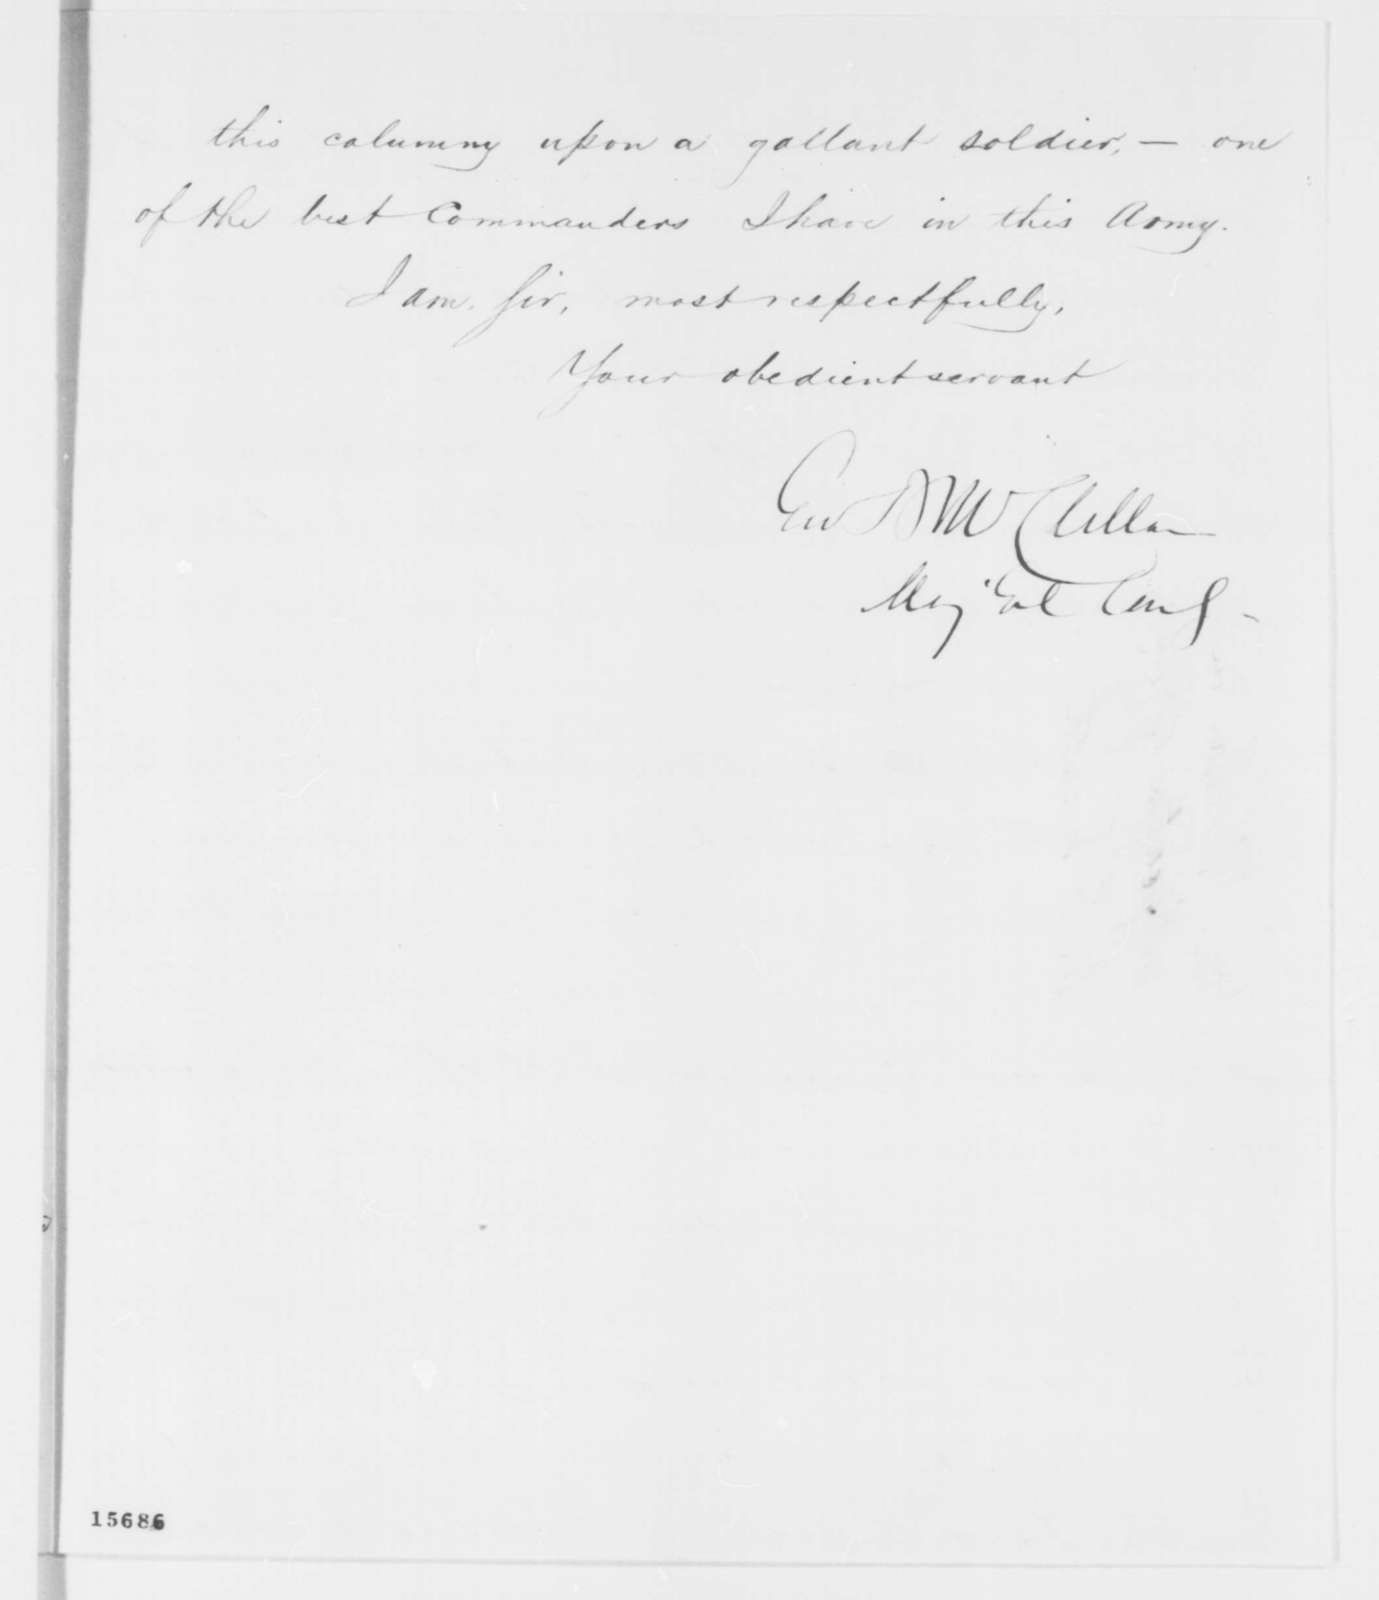 George B. McClellan to Abraham Lincoln, Friday, April 25, 1862  (Gen. William F. Smith)